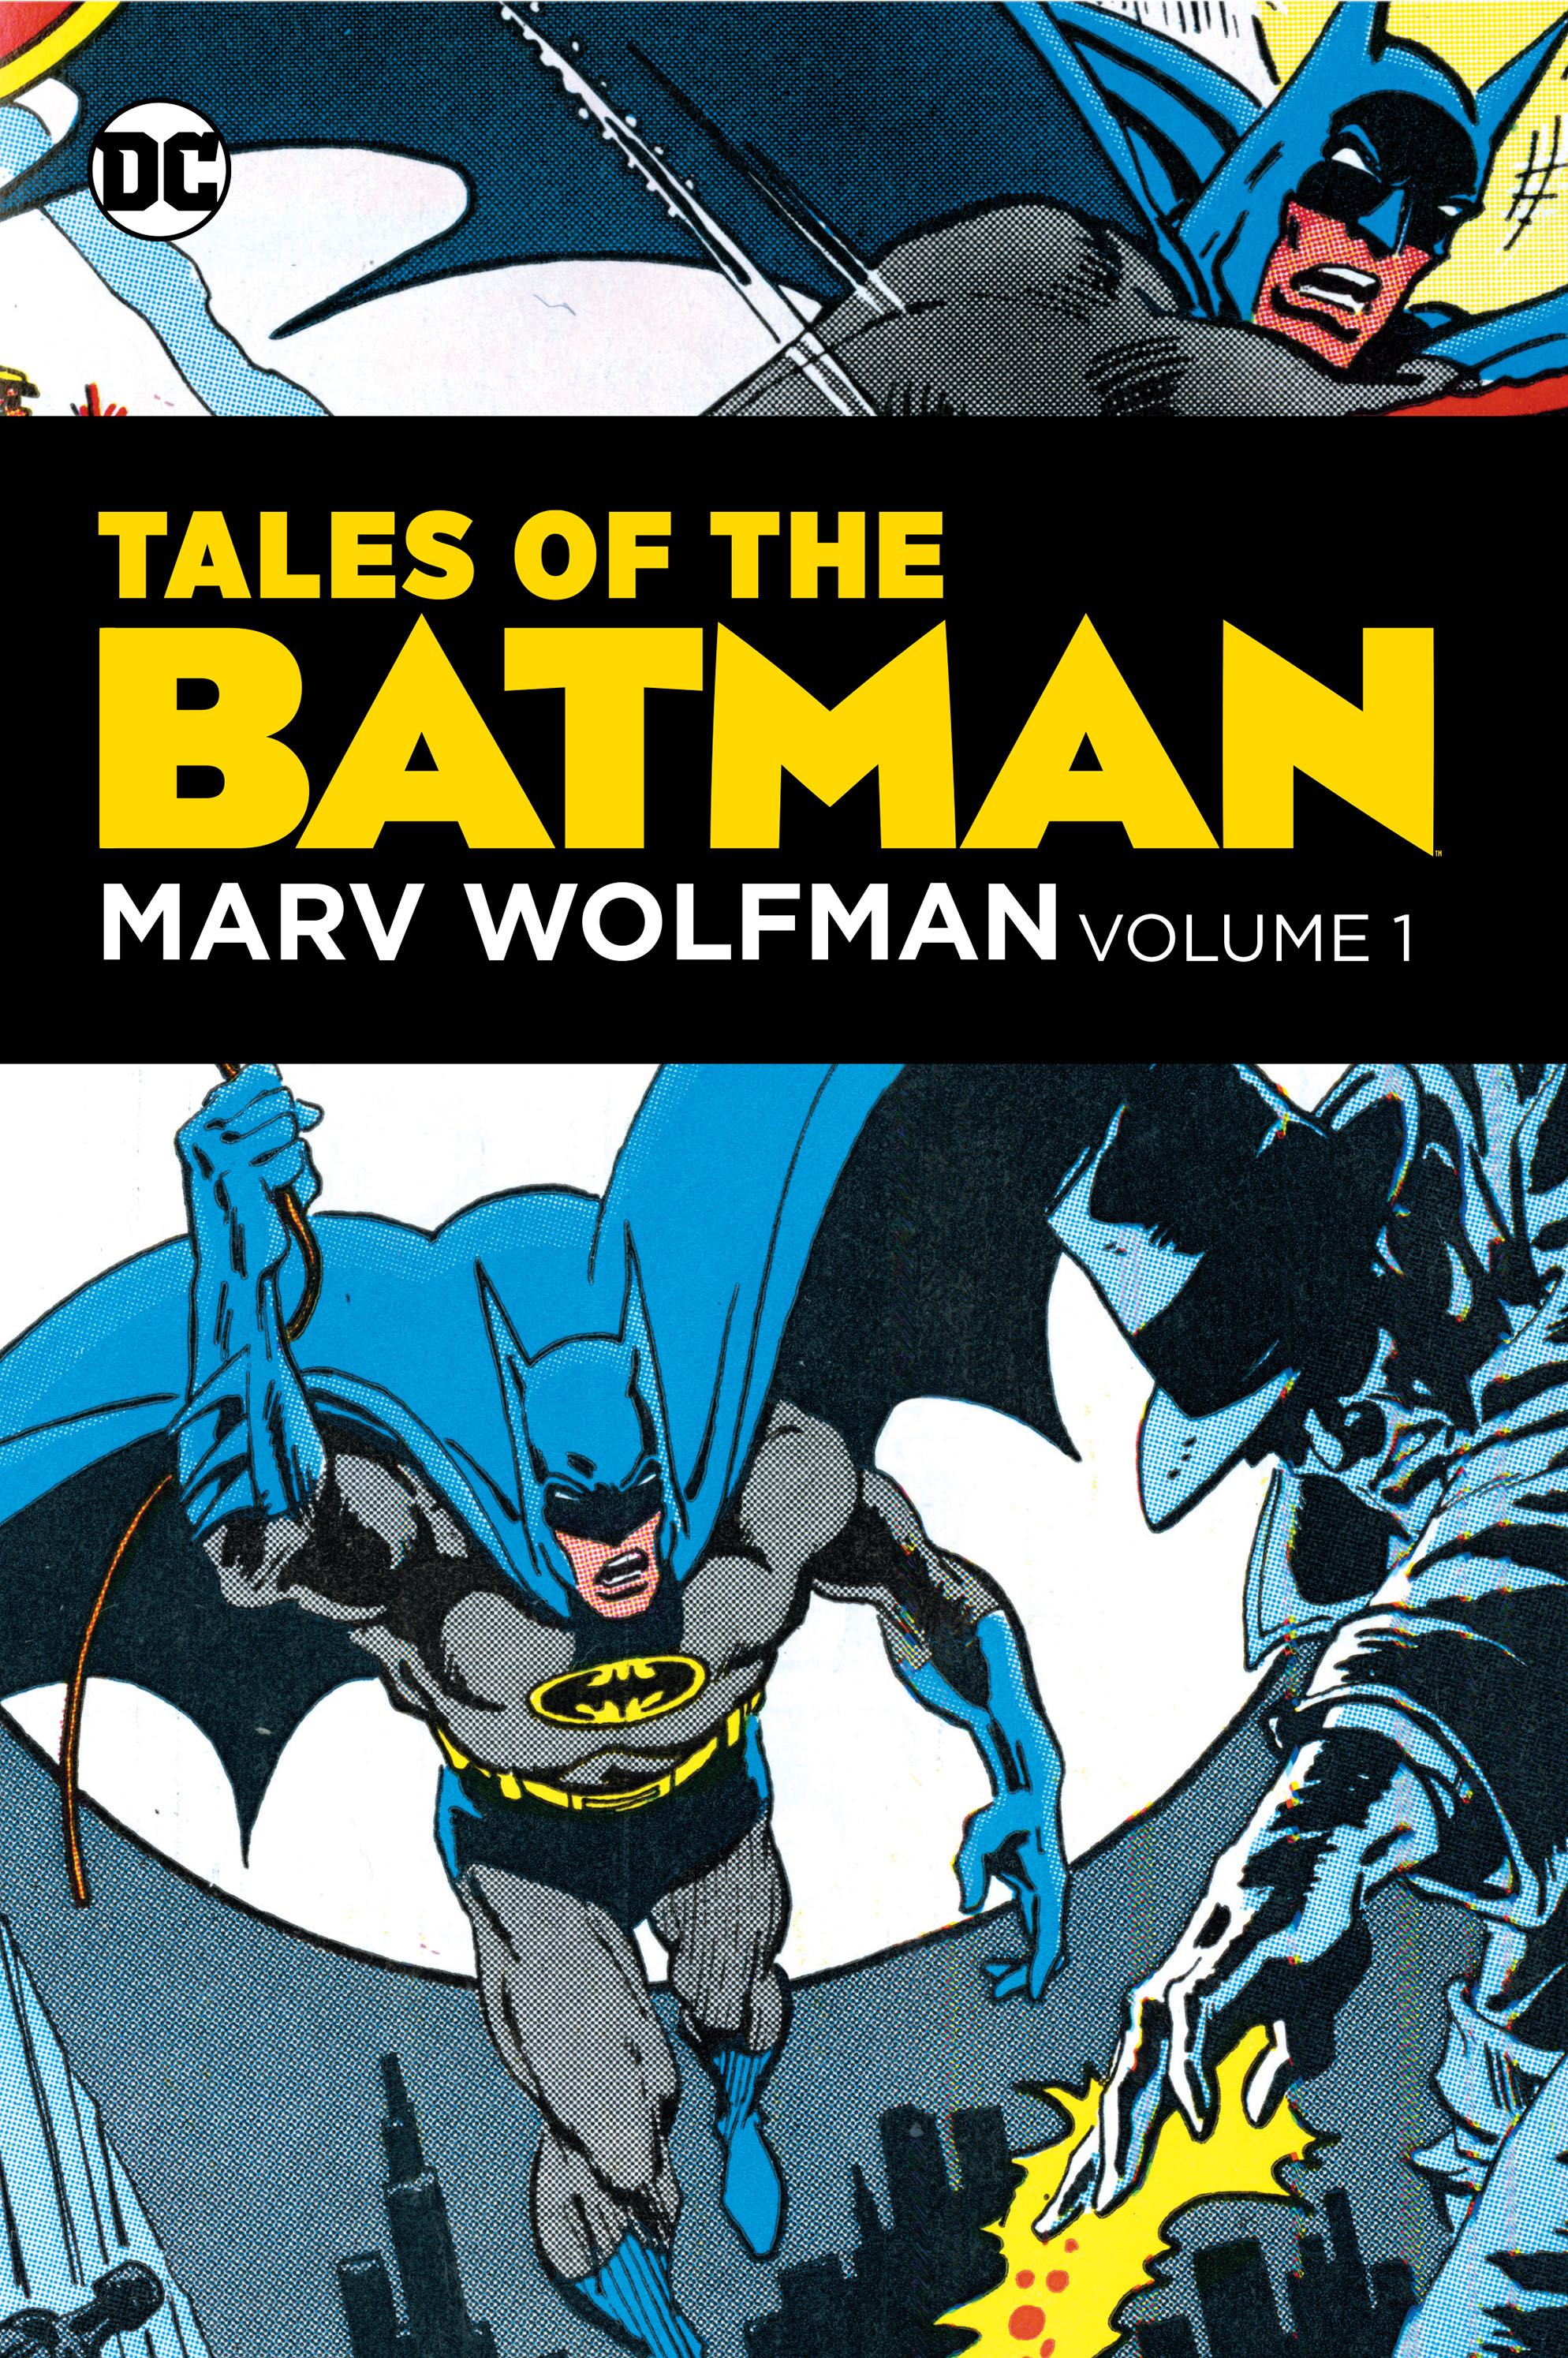 Tales of the Batman: Marv Wolfman Vol. 1 (Collected)